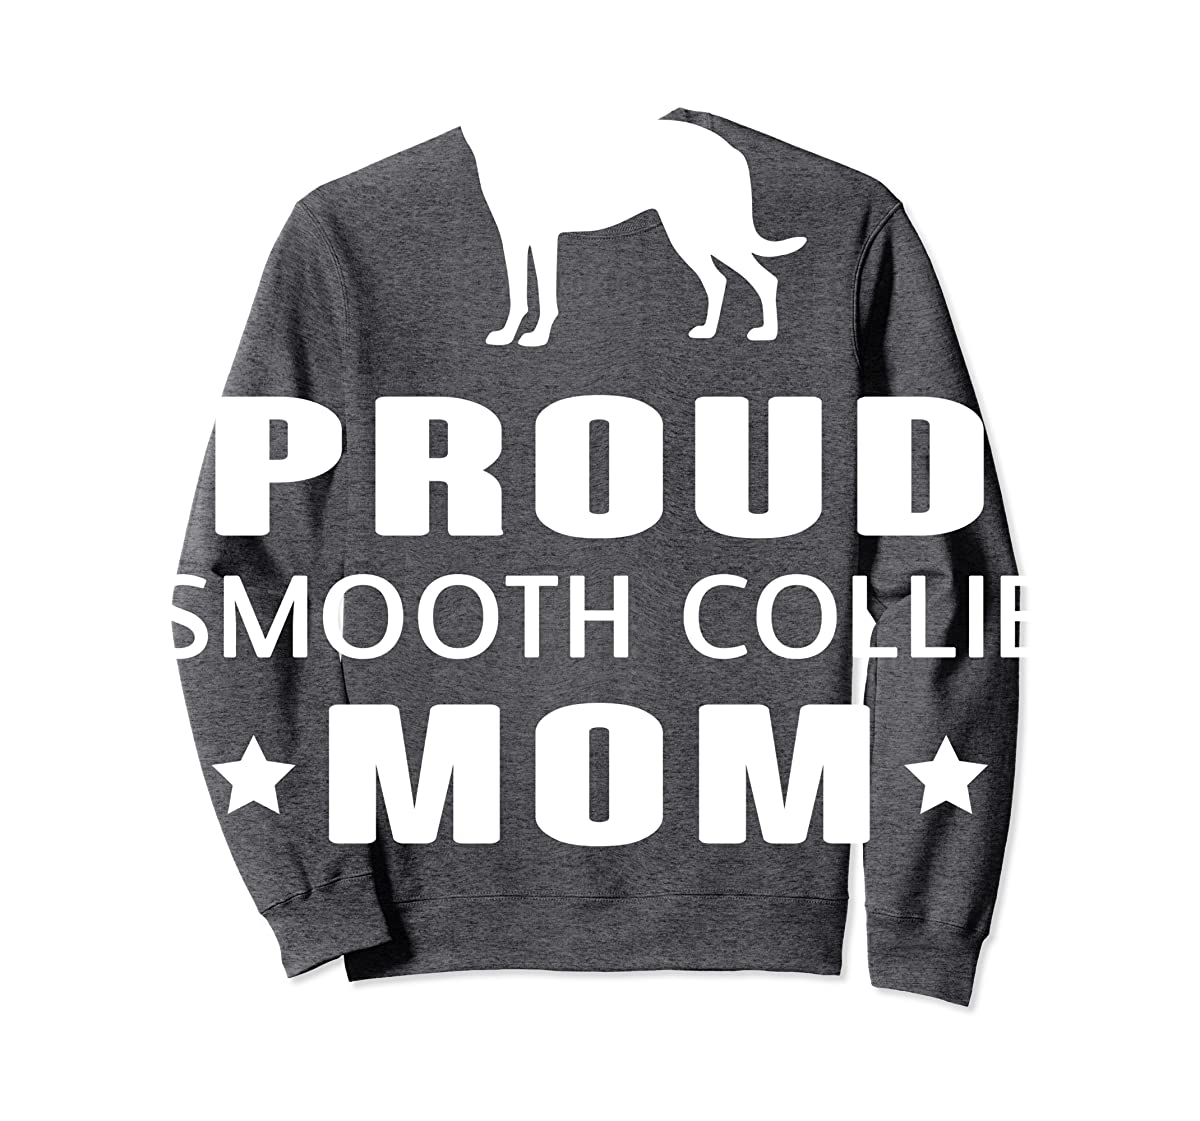 Smooth Collie Funny T-Shirts For Dog Lovers-Sweatshirt-Dark Heather